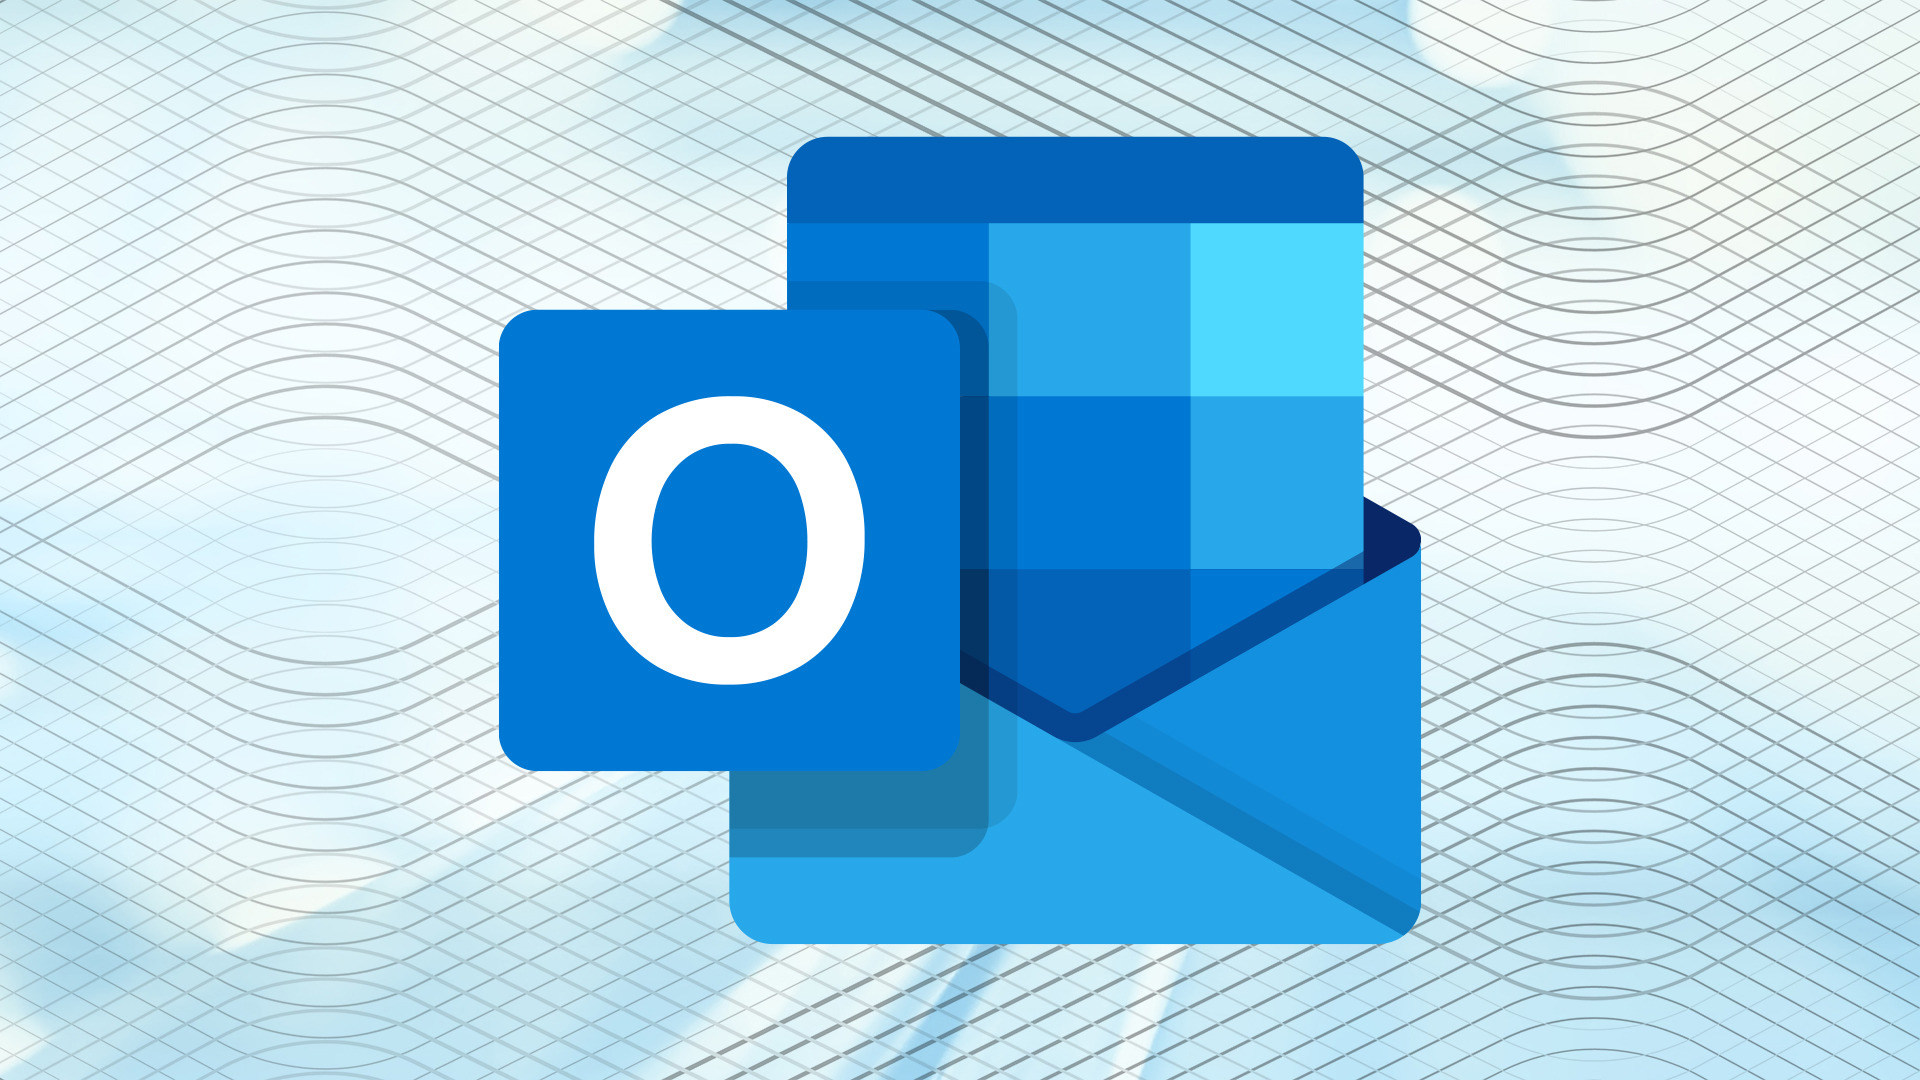 Logo, Office, E-Mail, Mail, Outlook, Microsoft Outlook, Microsoft Mail